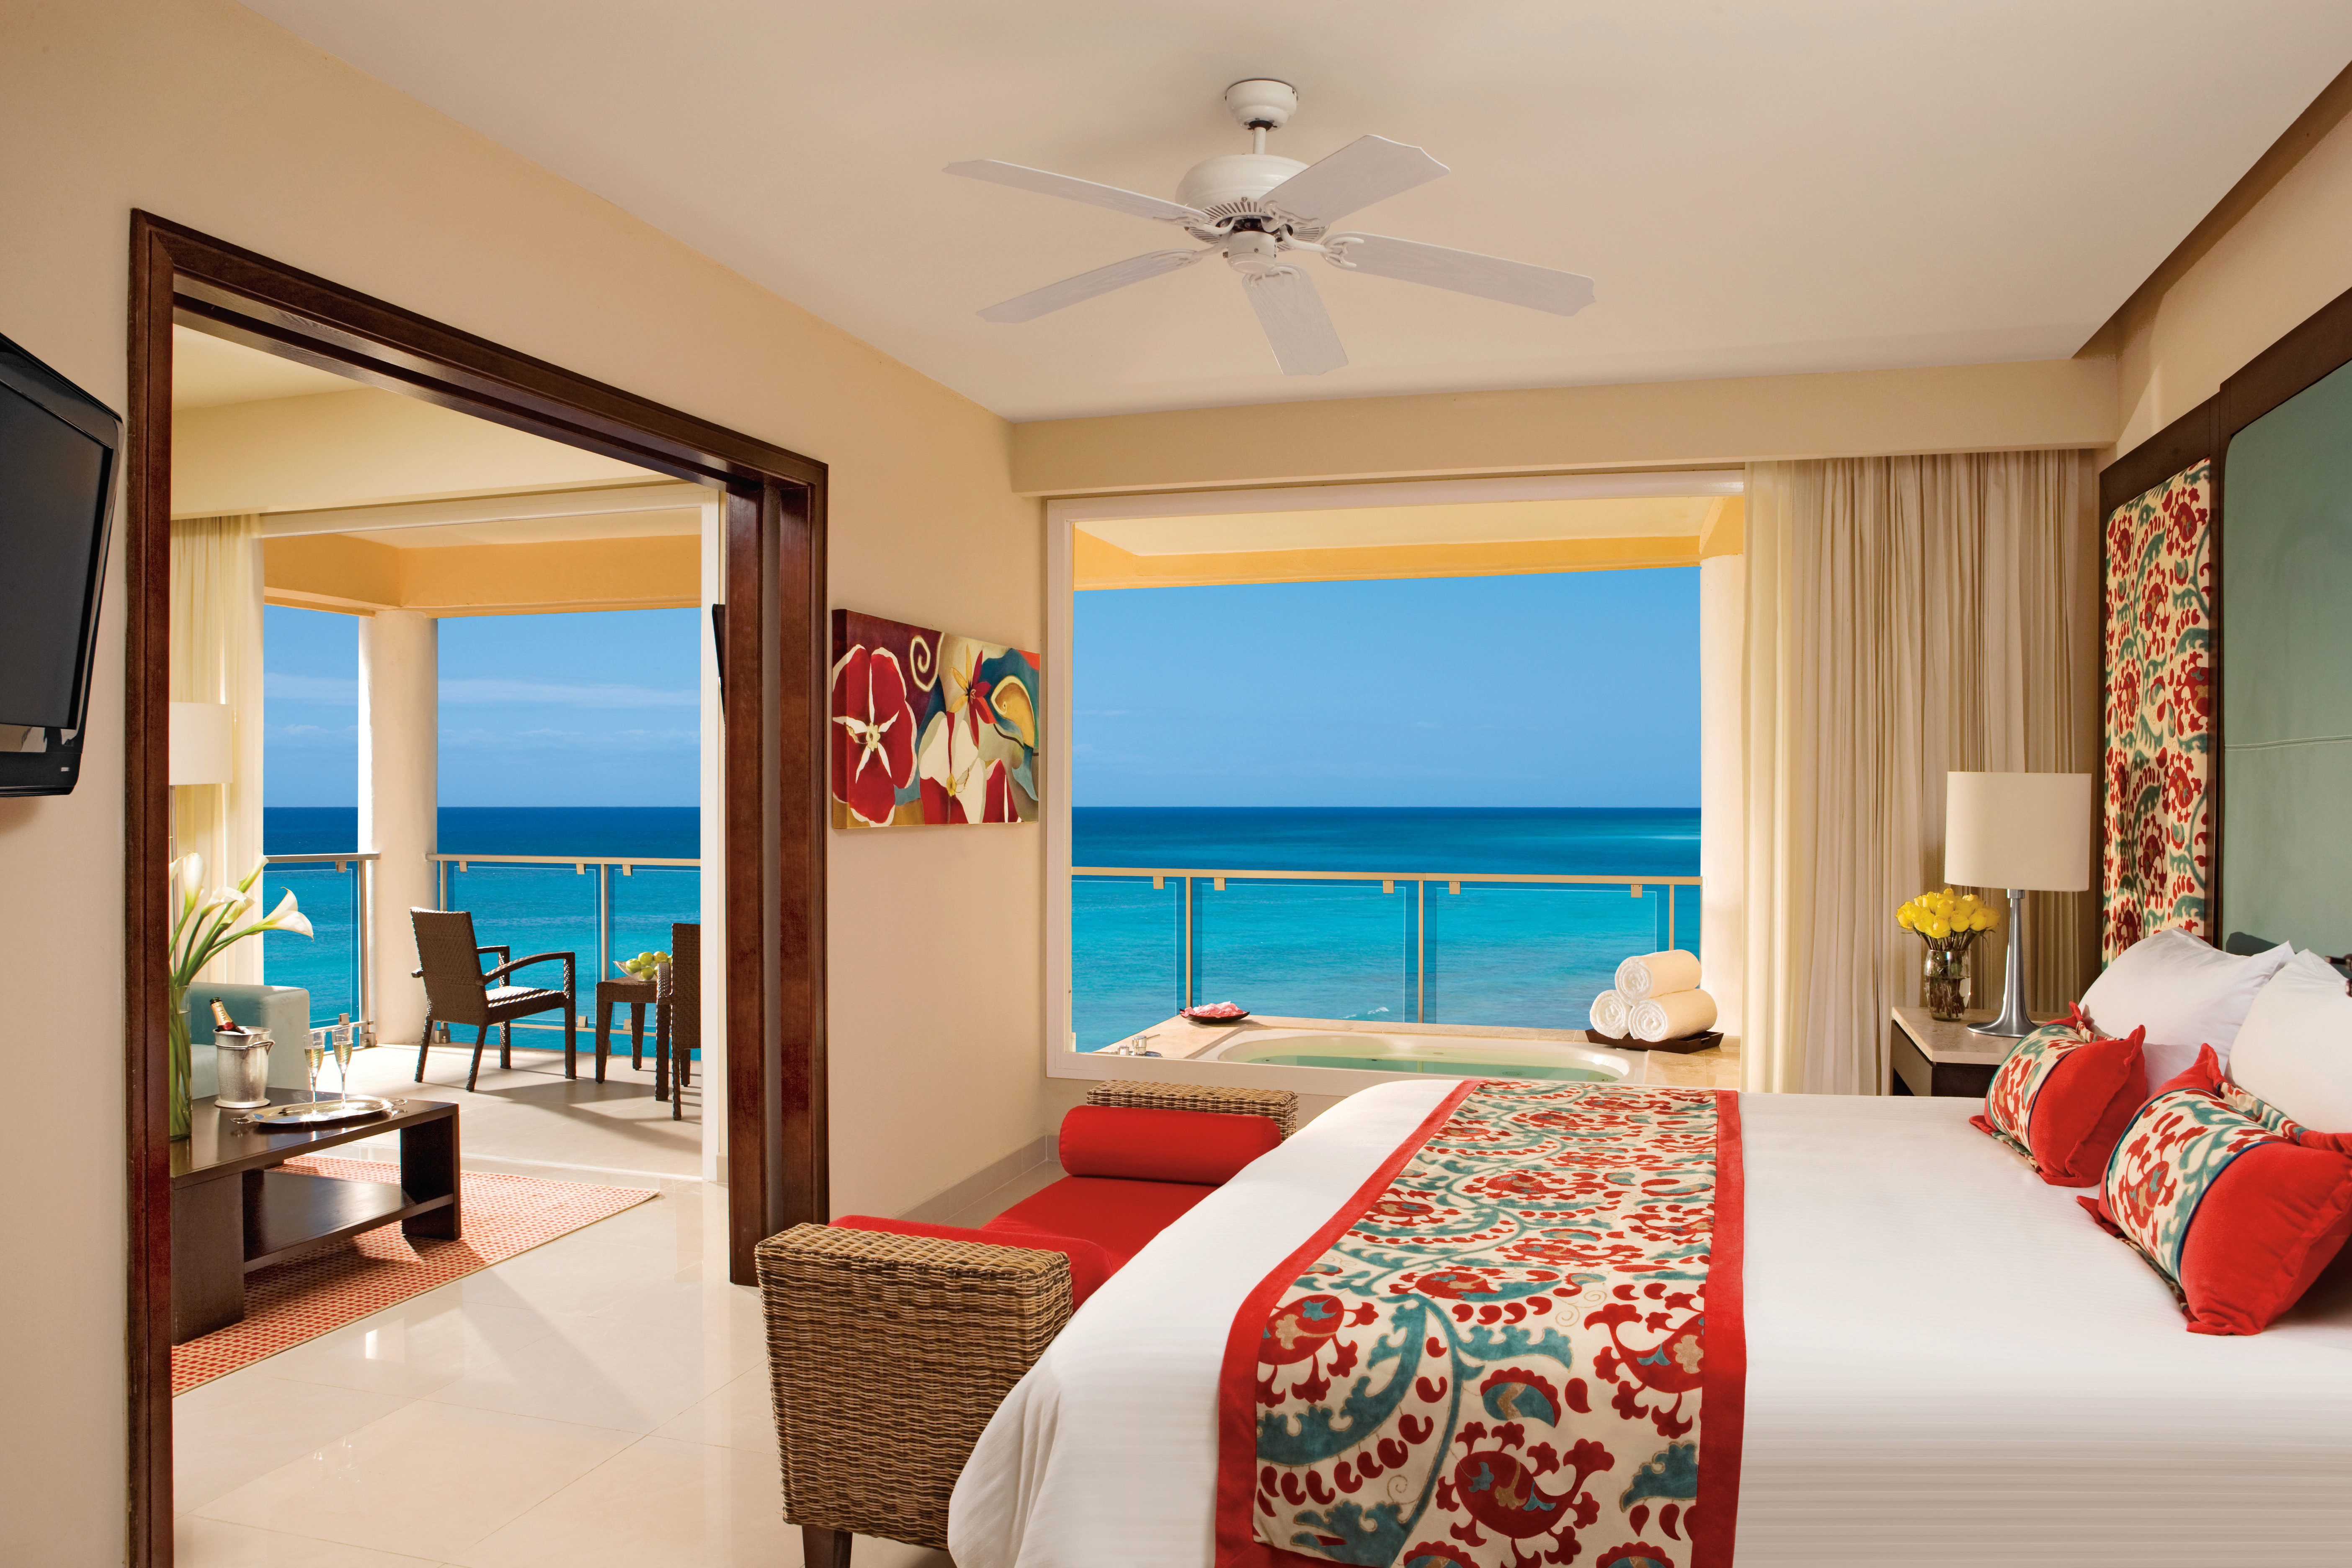 Travel Agency All-Inclusive Resort Now J